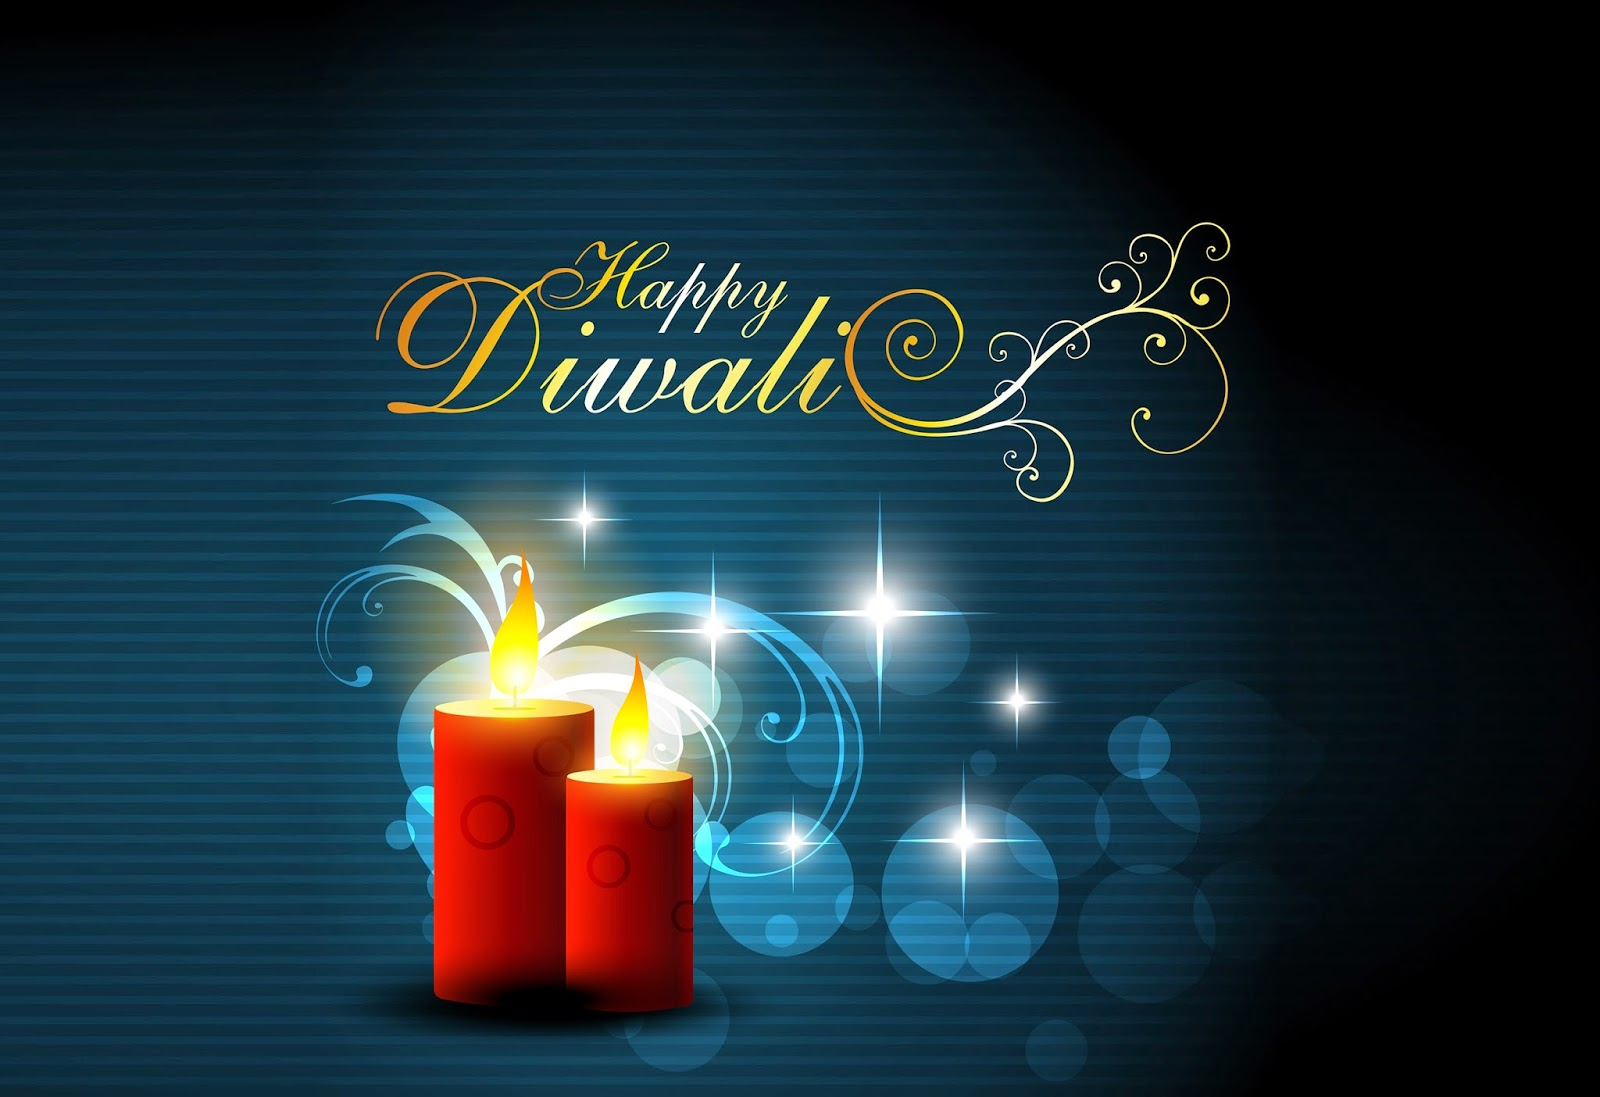 Diwali messages archives about good morning good night messages diwali messages in english m4hsunfo